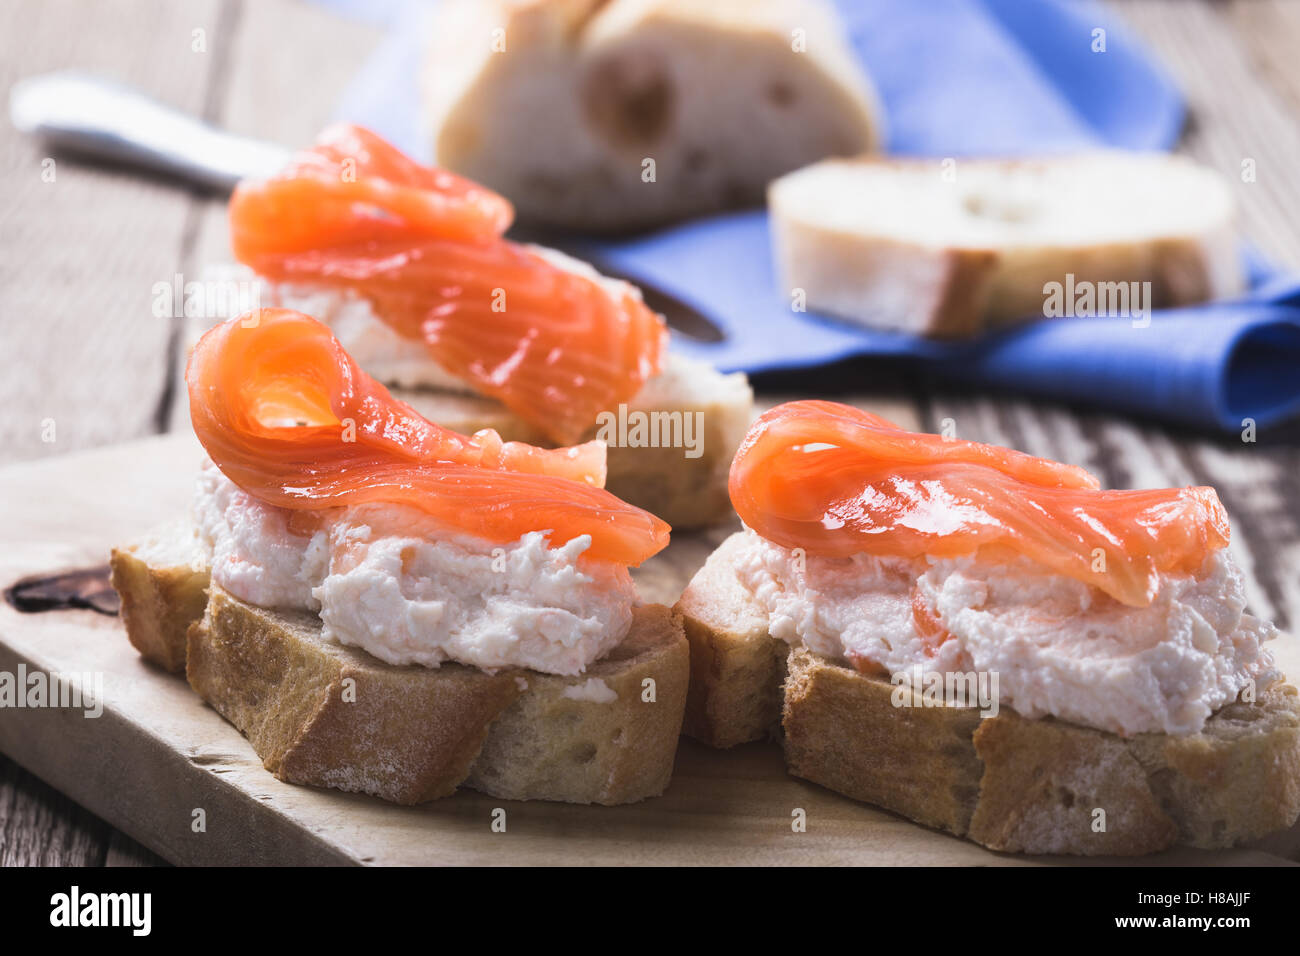 Open sandwich with smoked salmon. Best holiday appetizers - Stock Image